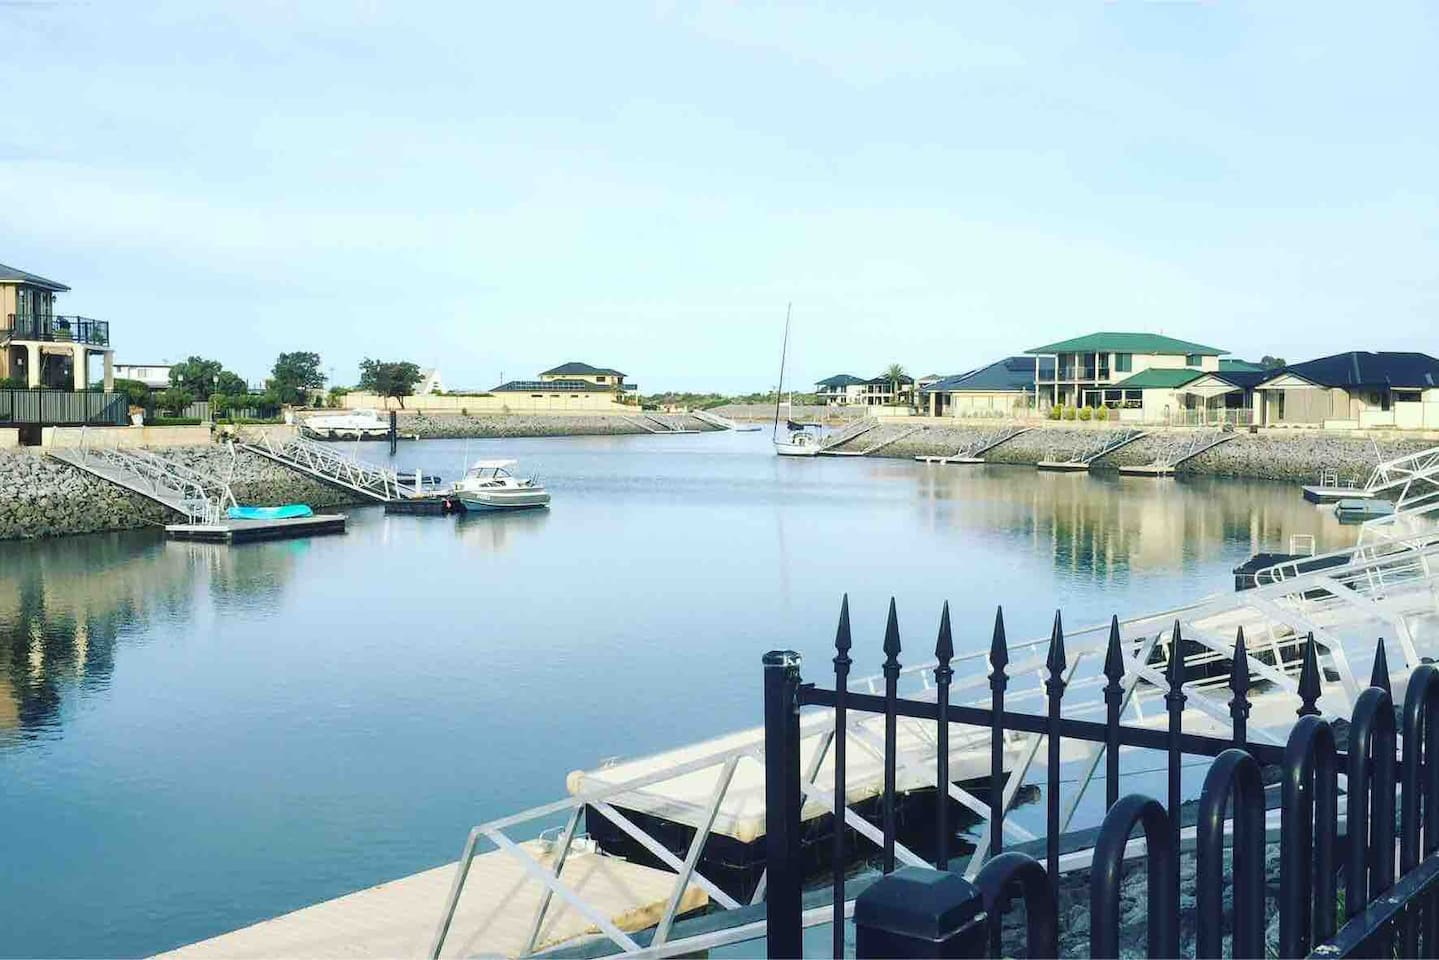 Wake up to this peaceful view of the marina when you stay at Tumby Bay Marina Villa